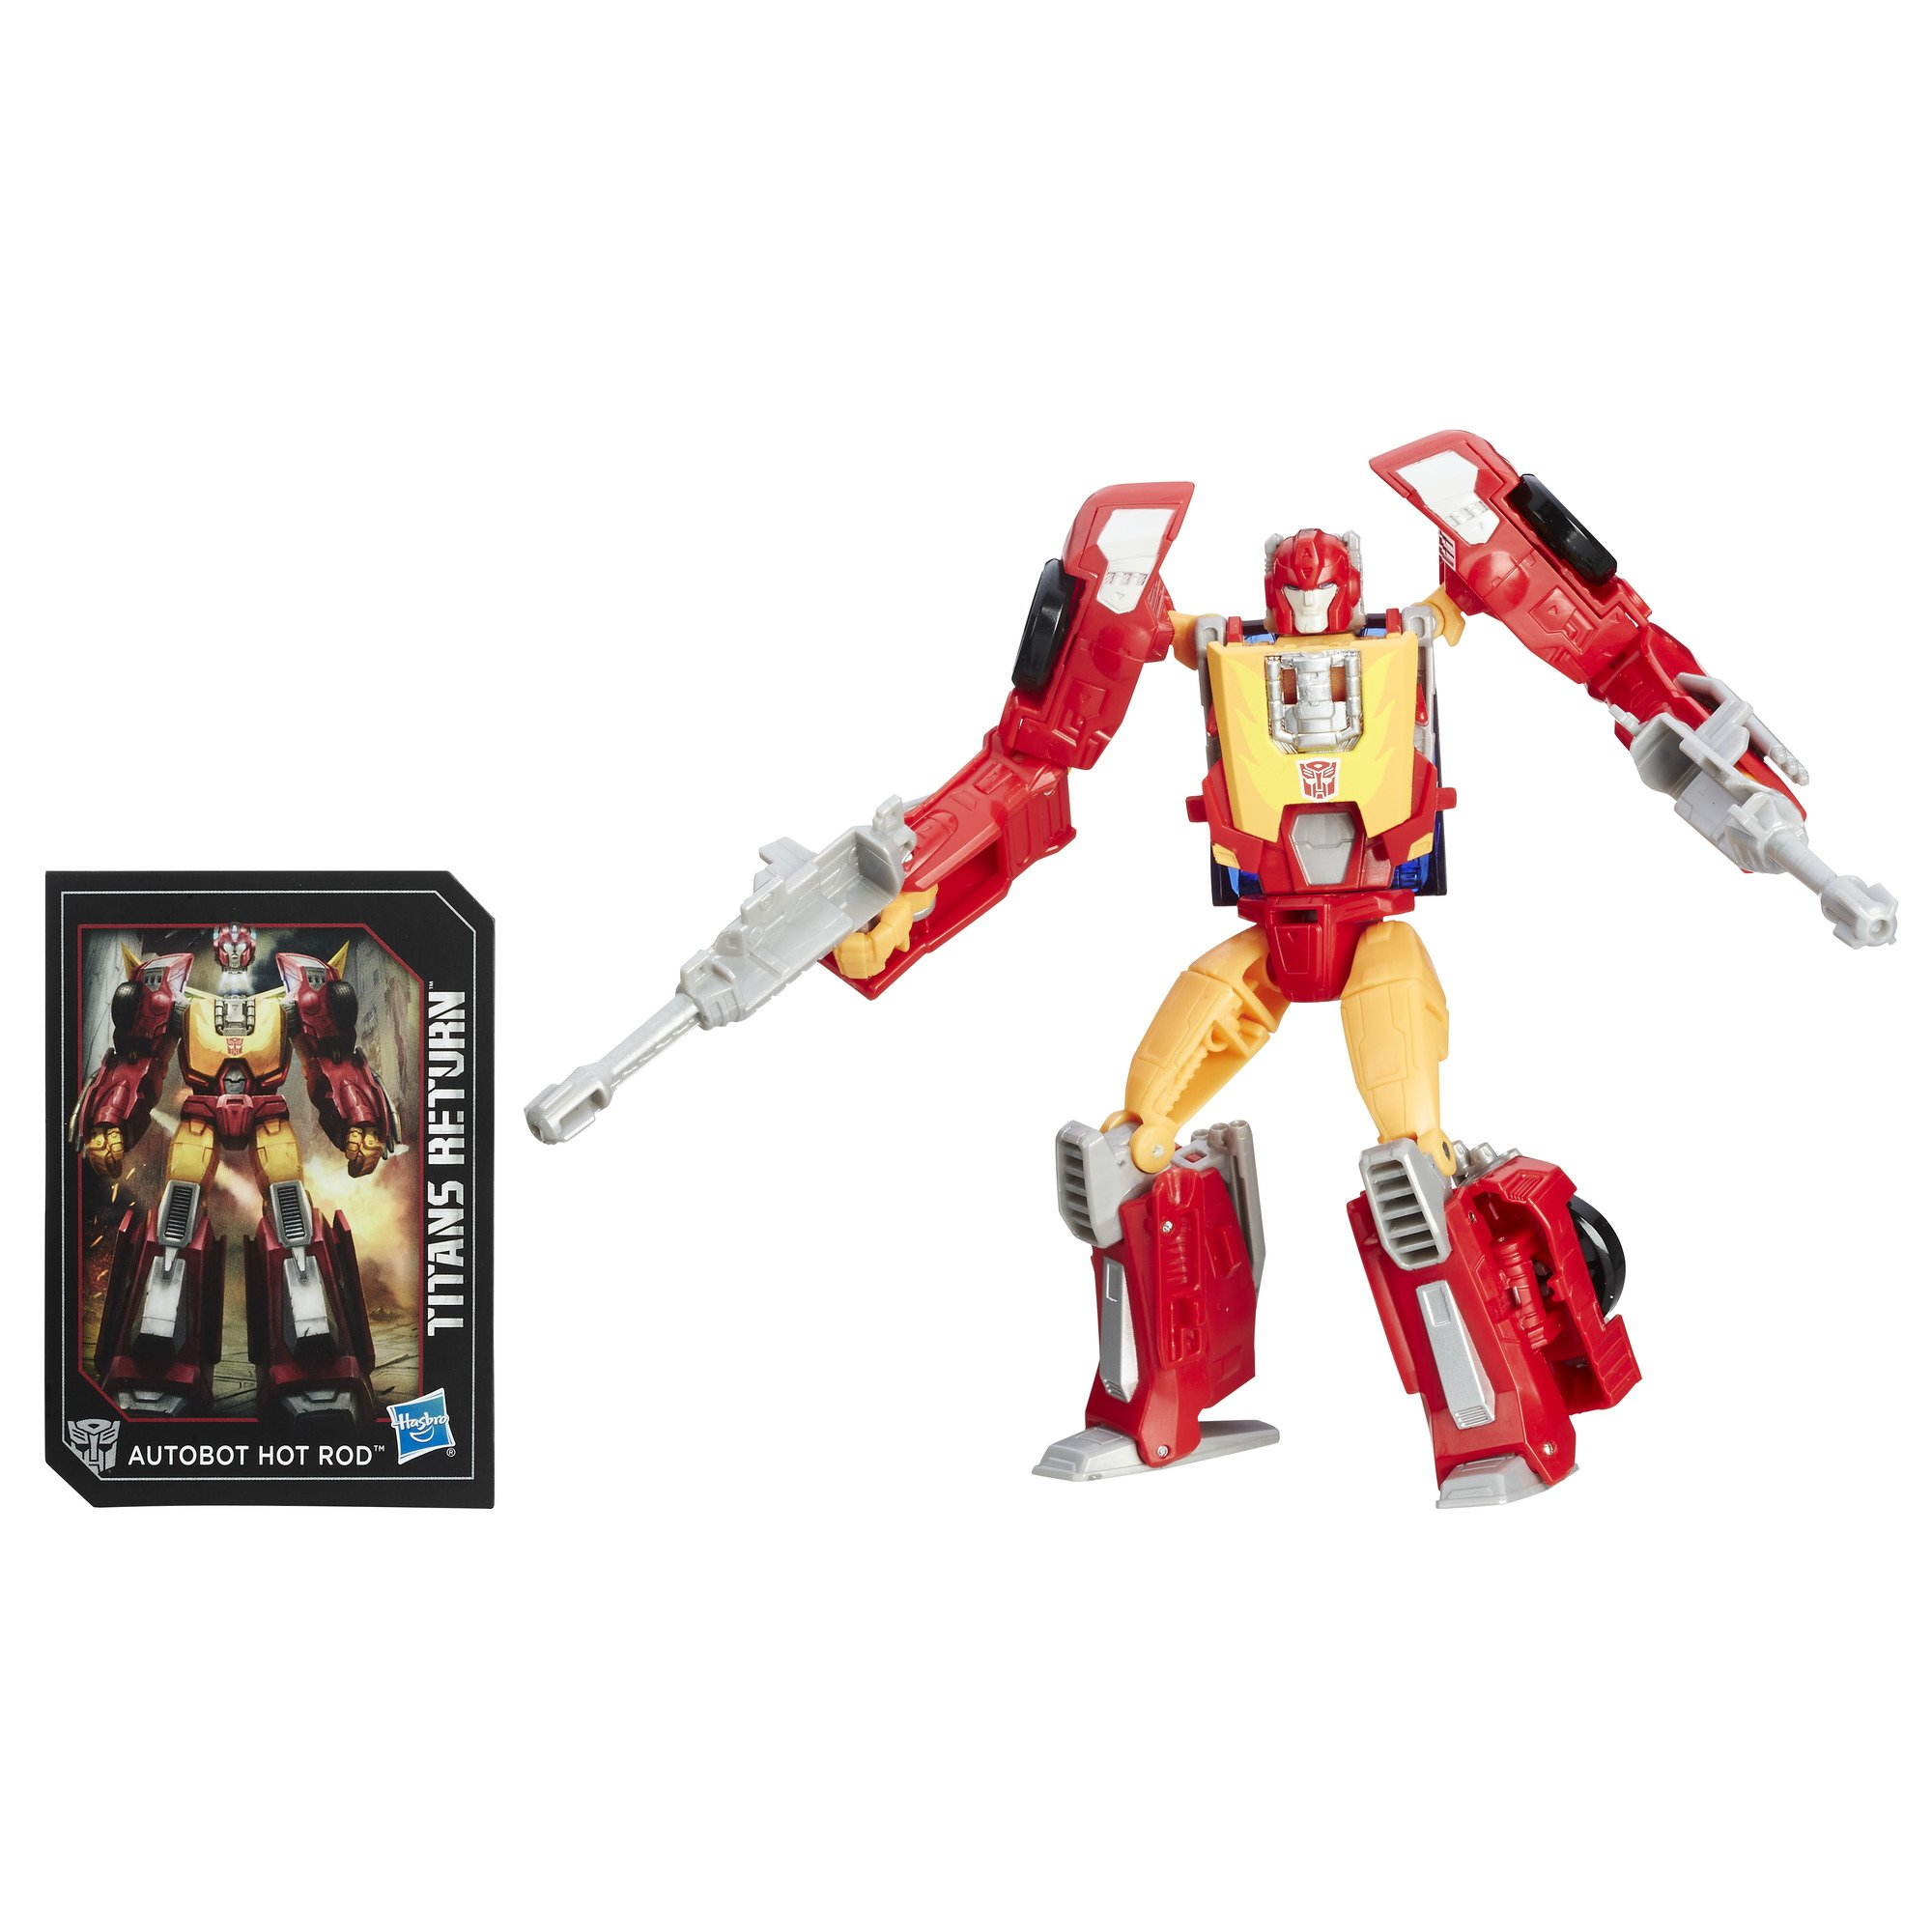 Transformers Generations Titans Return Autobot Hot Rod and Firedrive product image